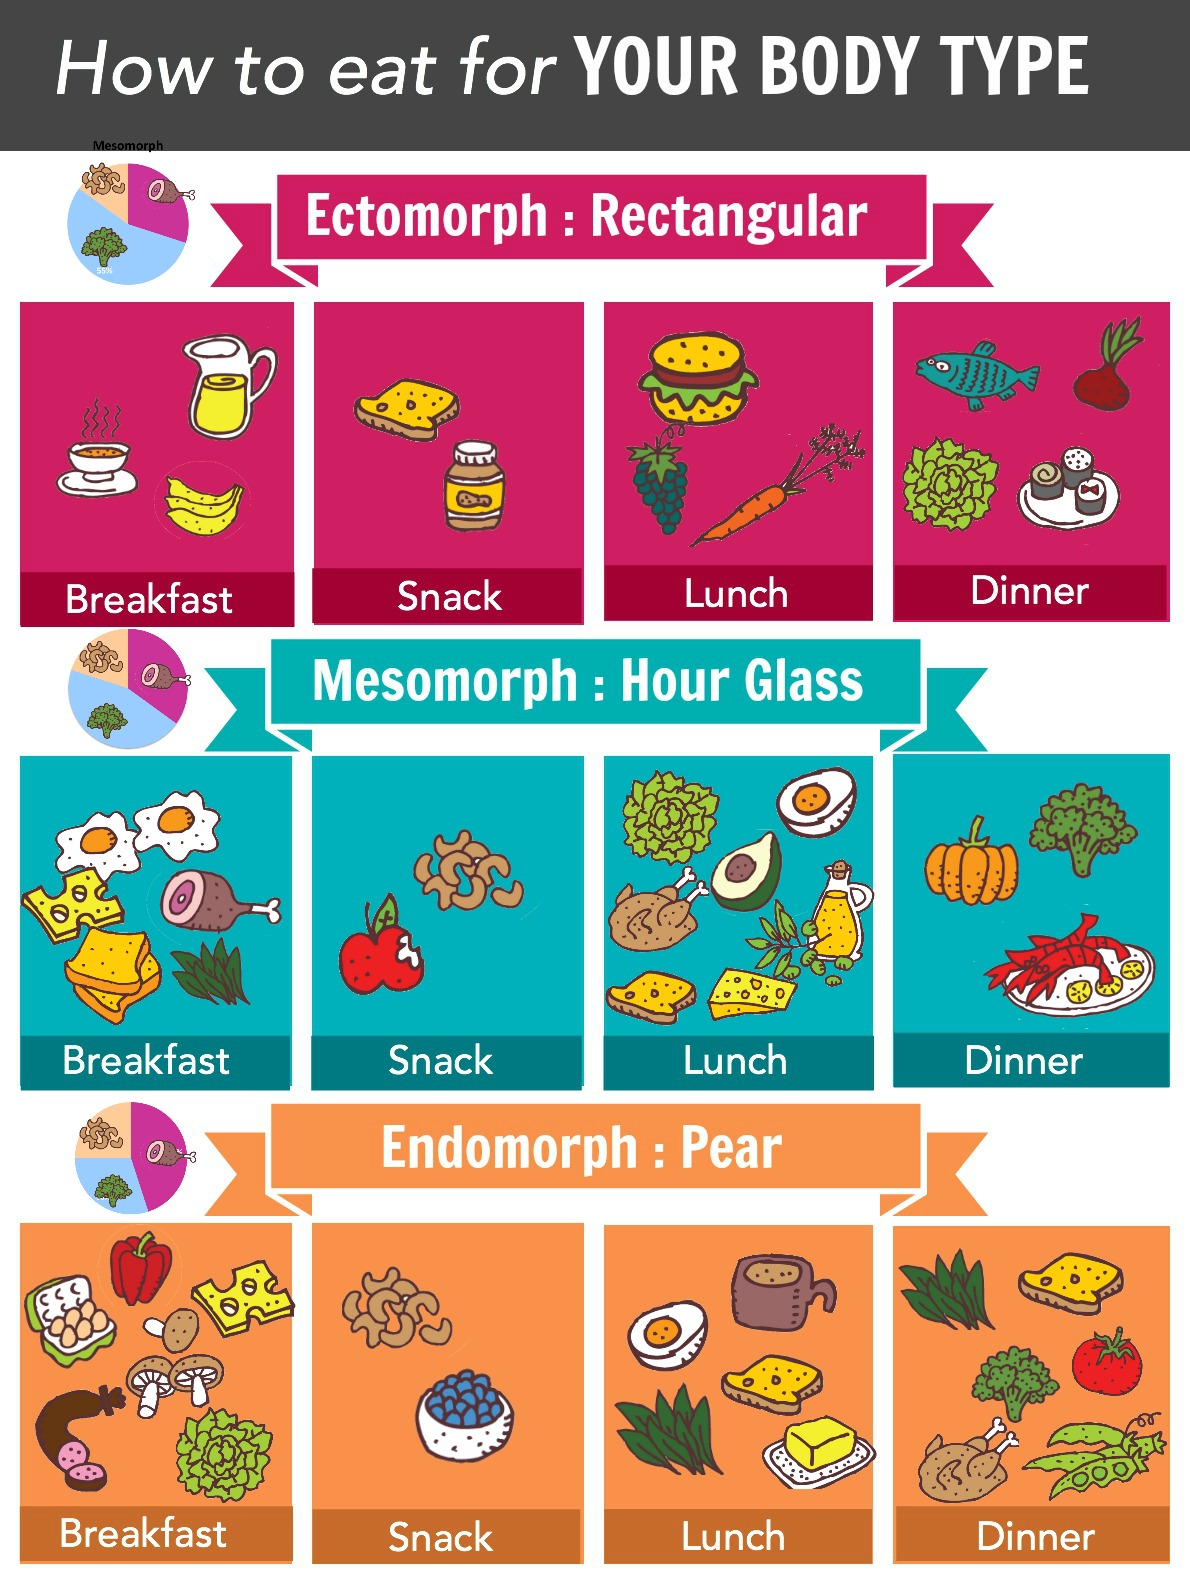 the correct foods for your body type, you can train your metabolism to function at optimal levels, which will increase your energy